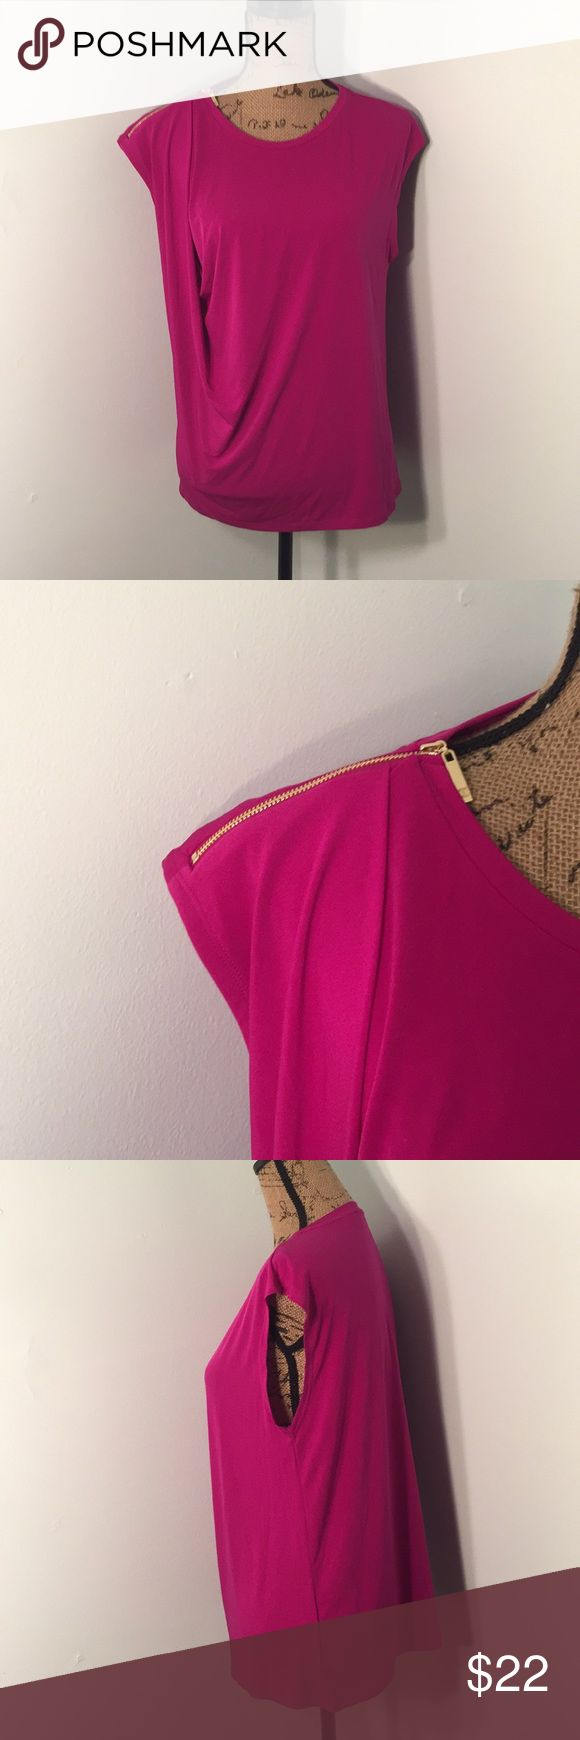 Magenta Ivank Trump Top This is the hot new color for spring.   The zipper does zip on the shoulder. Dry clean only is recommended. Ivanka Trump Tops Blouses